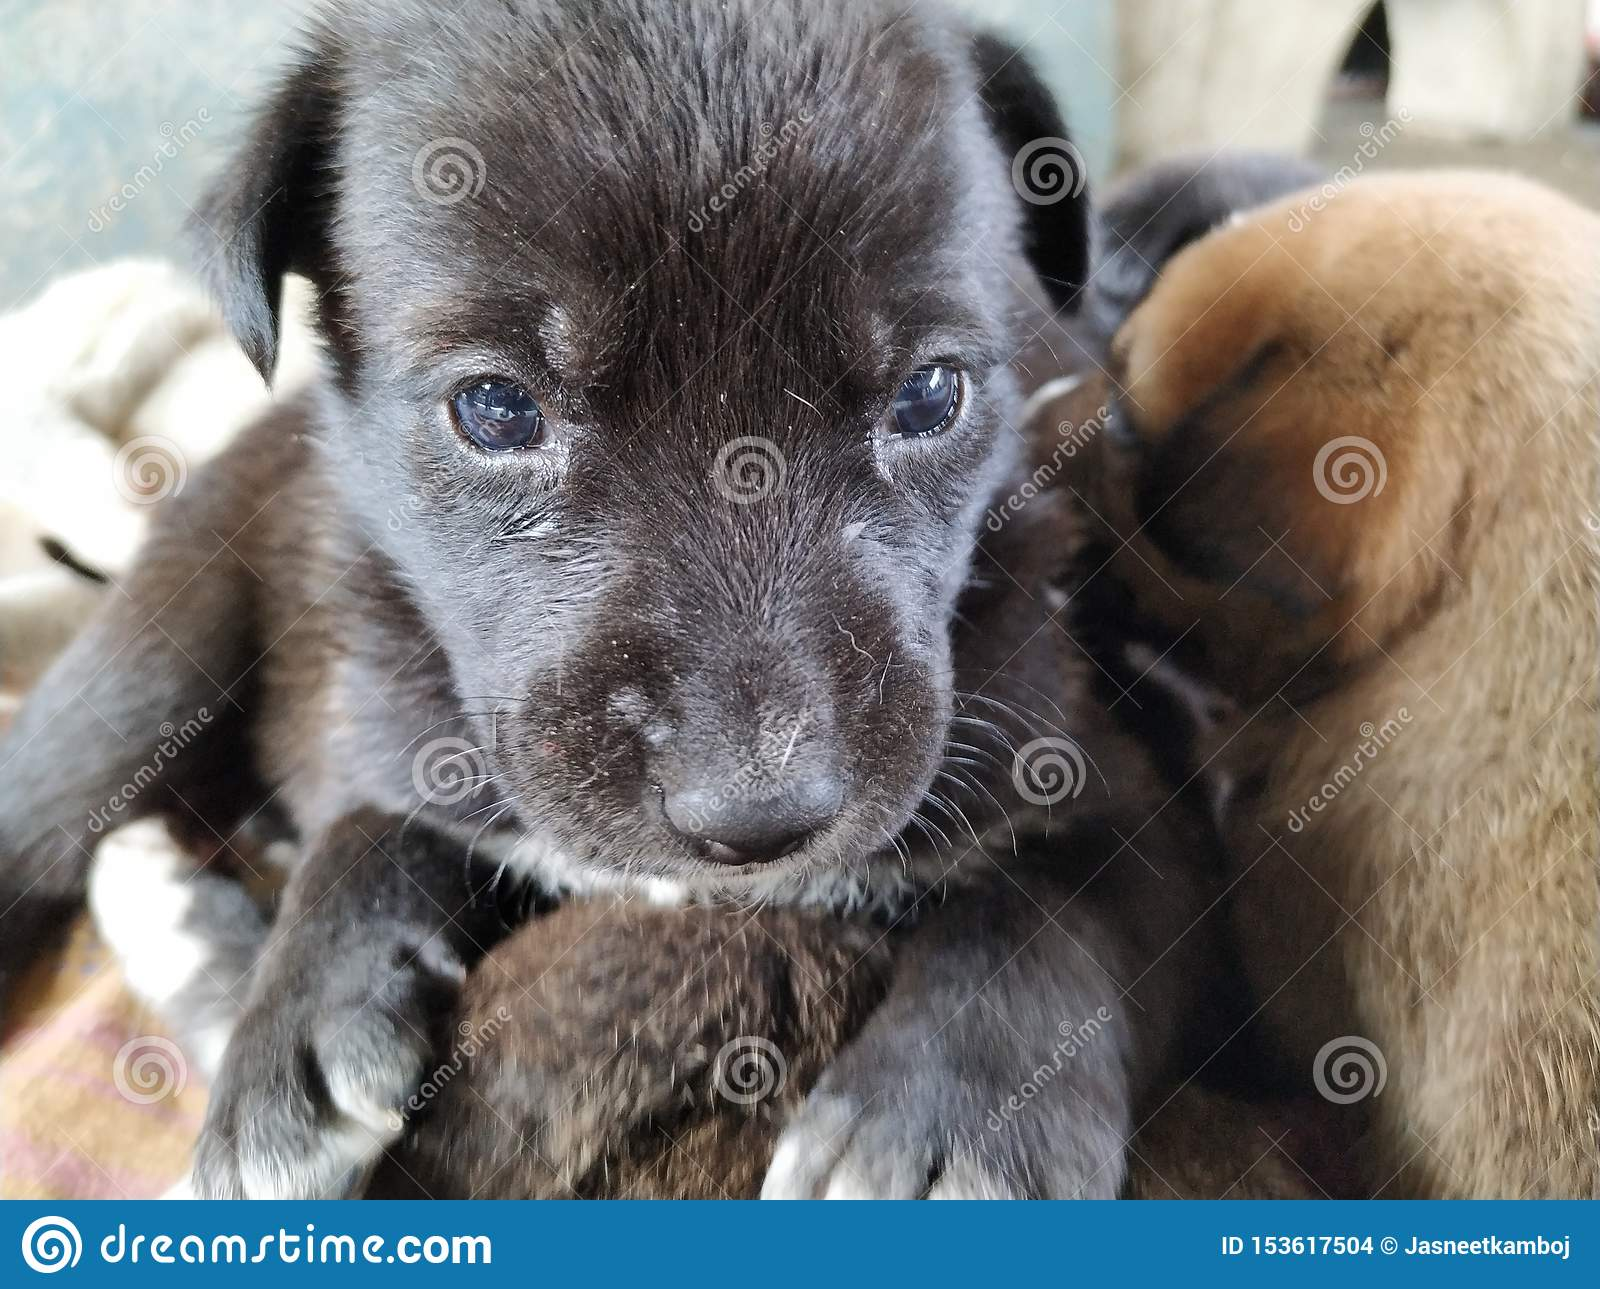 Cute Black Puppy With Beautiful Blue Eyes Sitting On Another Puppy Stock Photo Image Of Sitting Blue 153617504